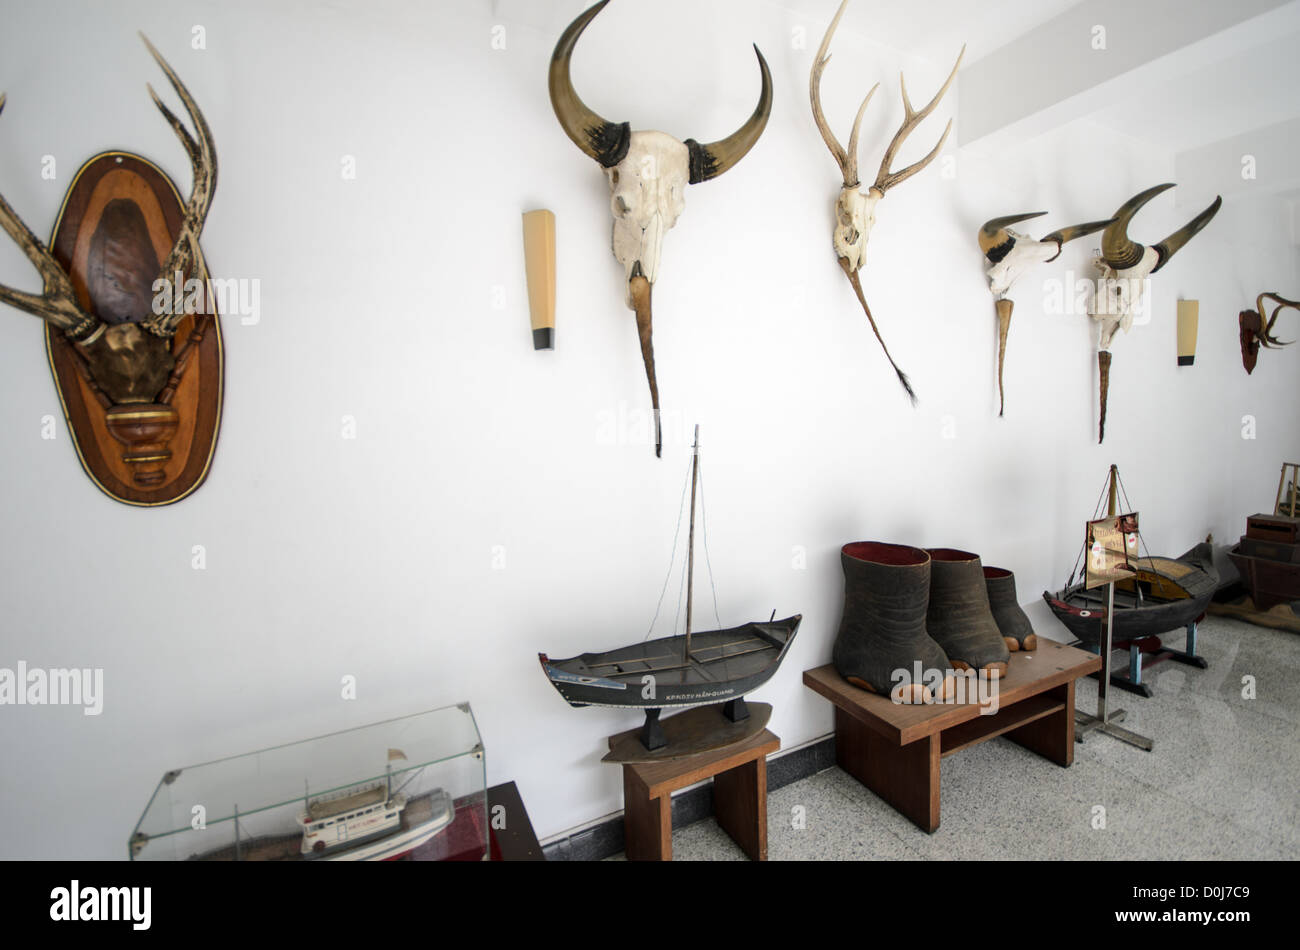 HO CHI MINH CITY, Vietnam - Various trophies and gifts on display outside the presidential family's living quarters at Reunification Palace (the former ...